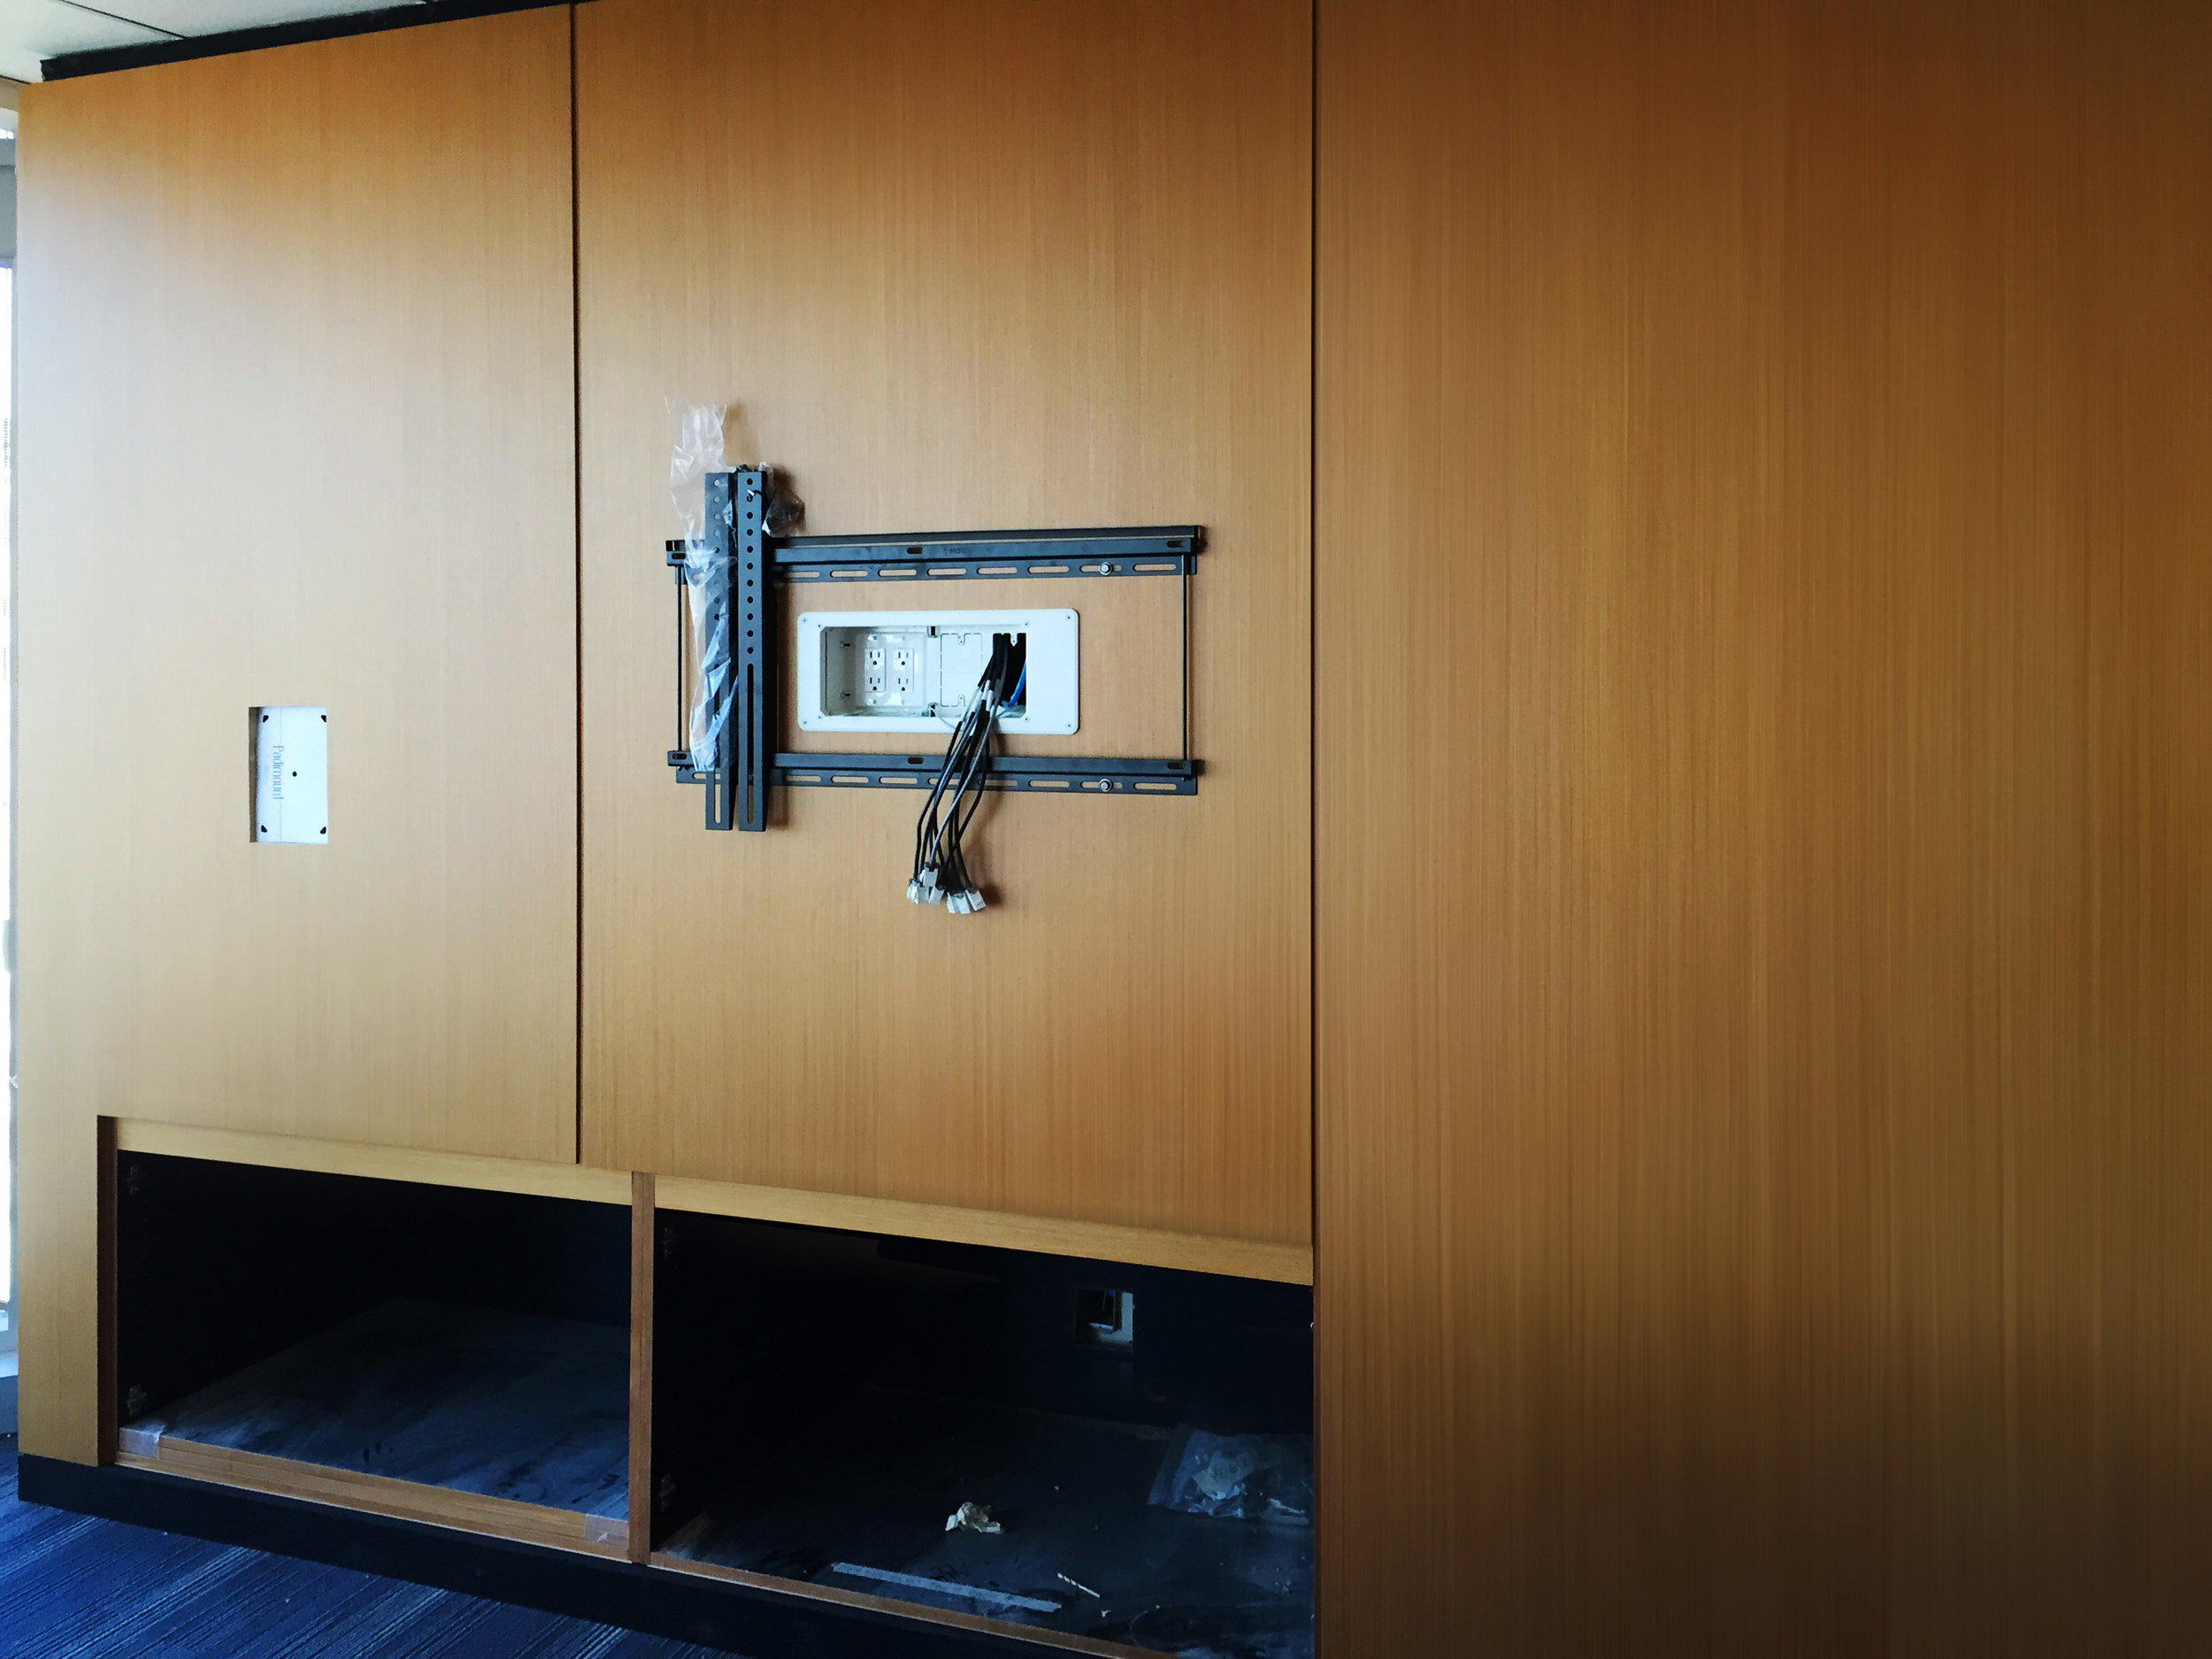 A TV mount is being installed onto the sleek millwork, and an allowance for a control iPad sits at the left, awaiting its hardware.